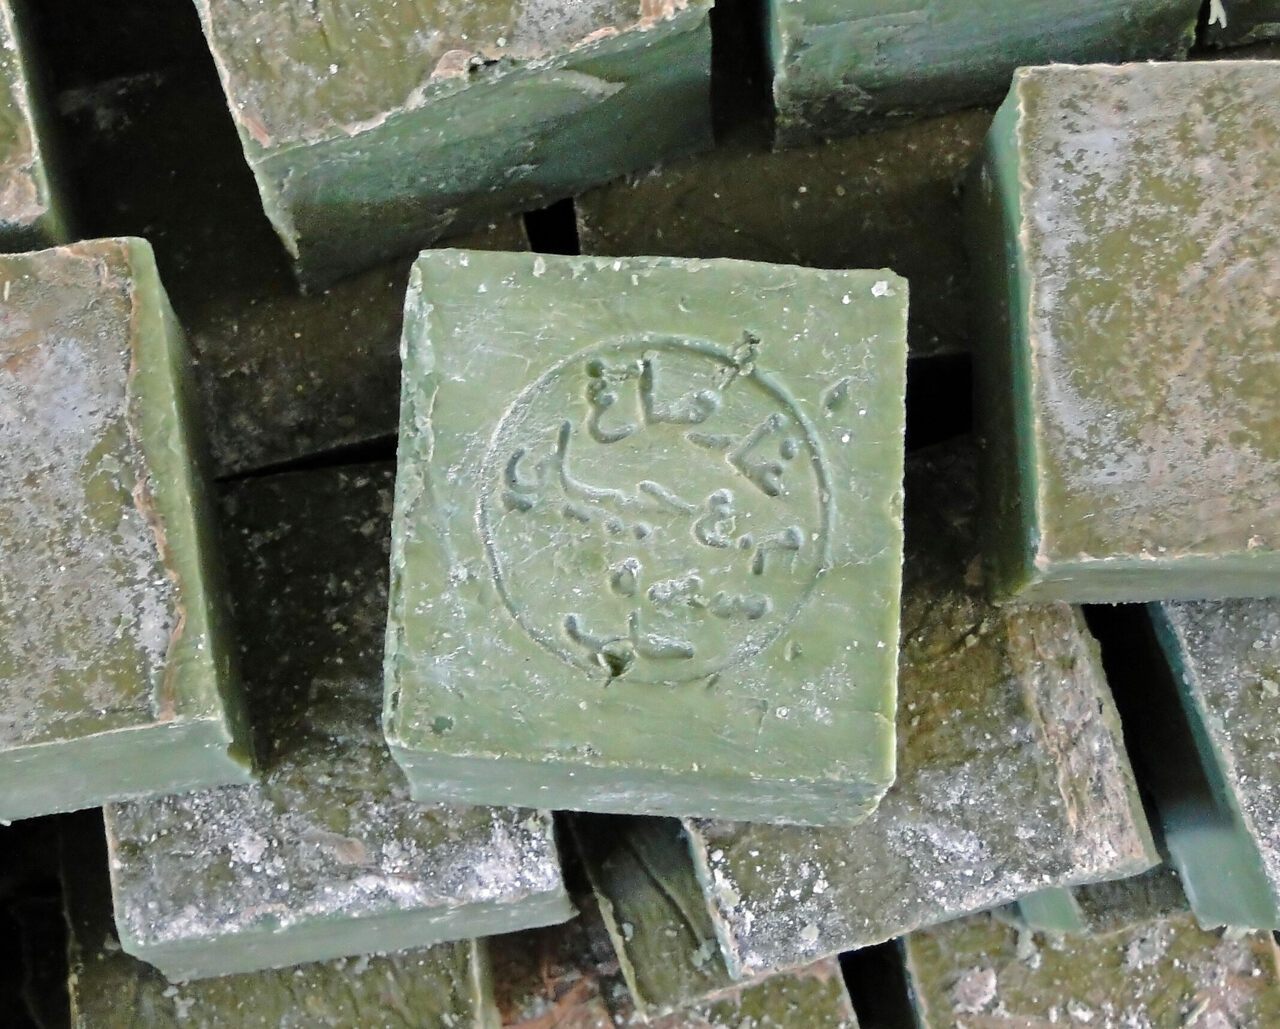 Accept no substitutes: Authentic Aleppo soap bears its maker's mark, and the Arabic name for the city of its origin.